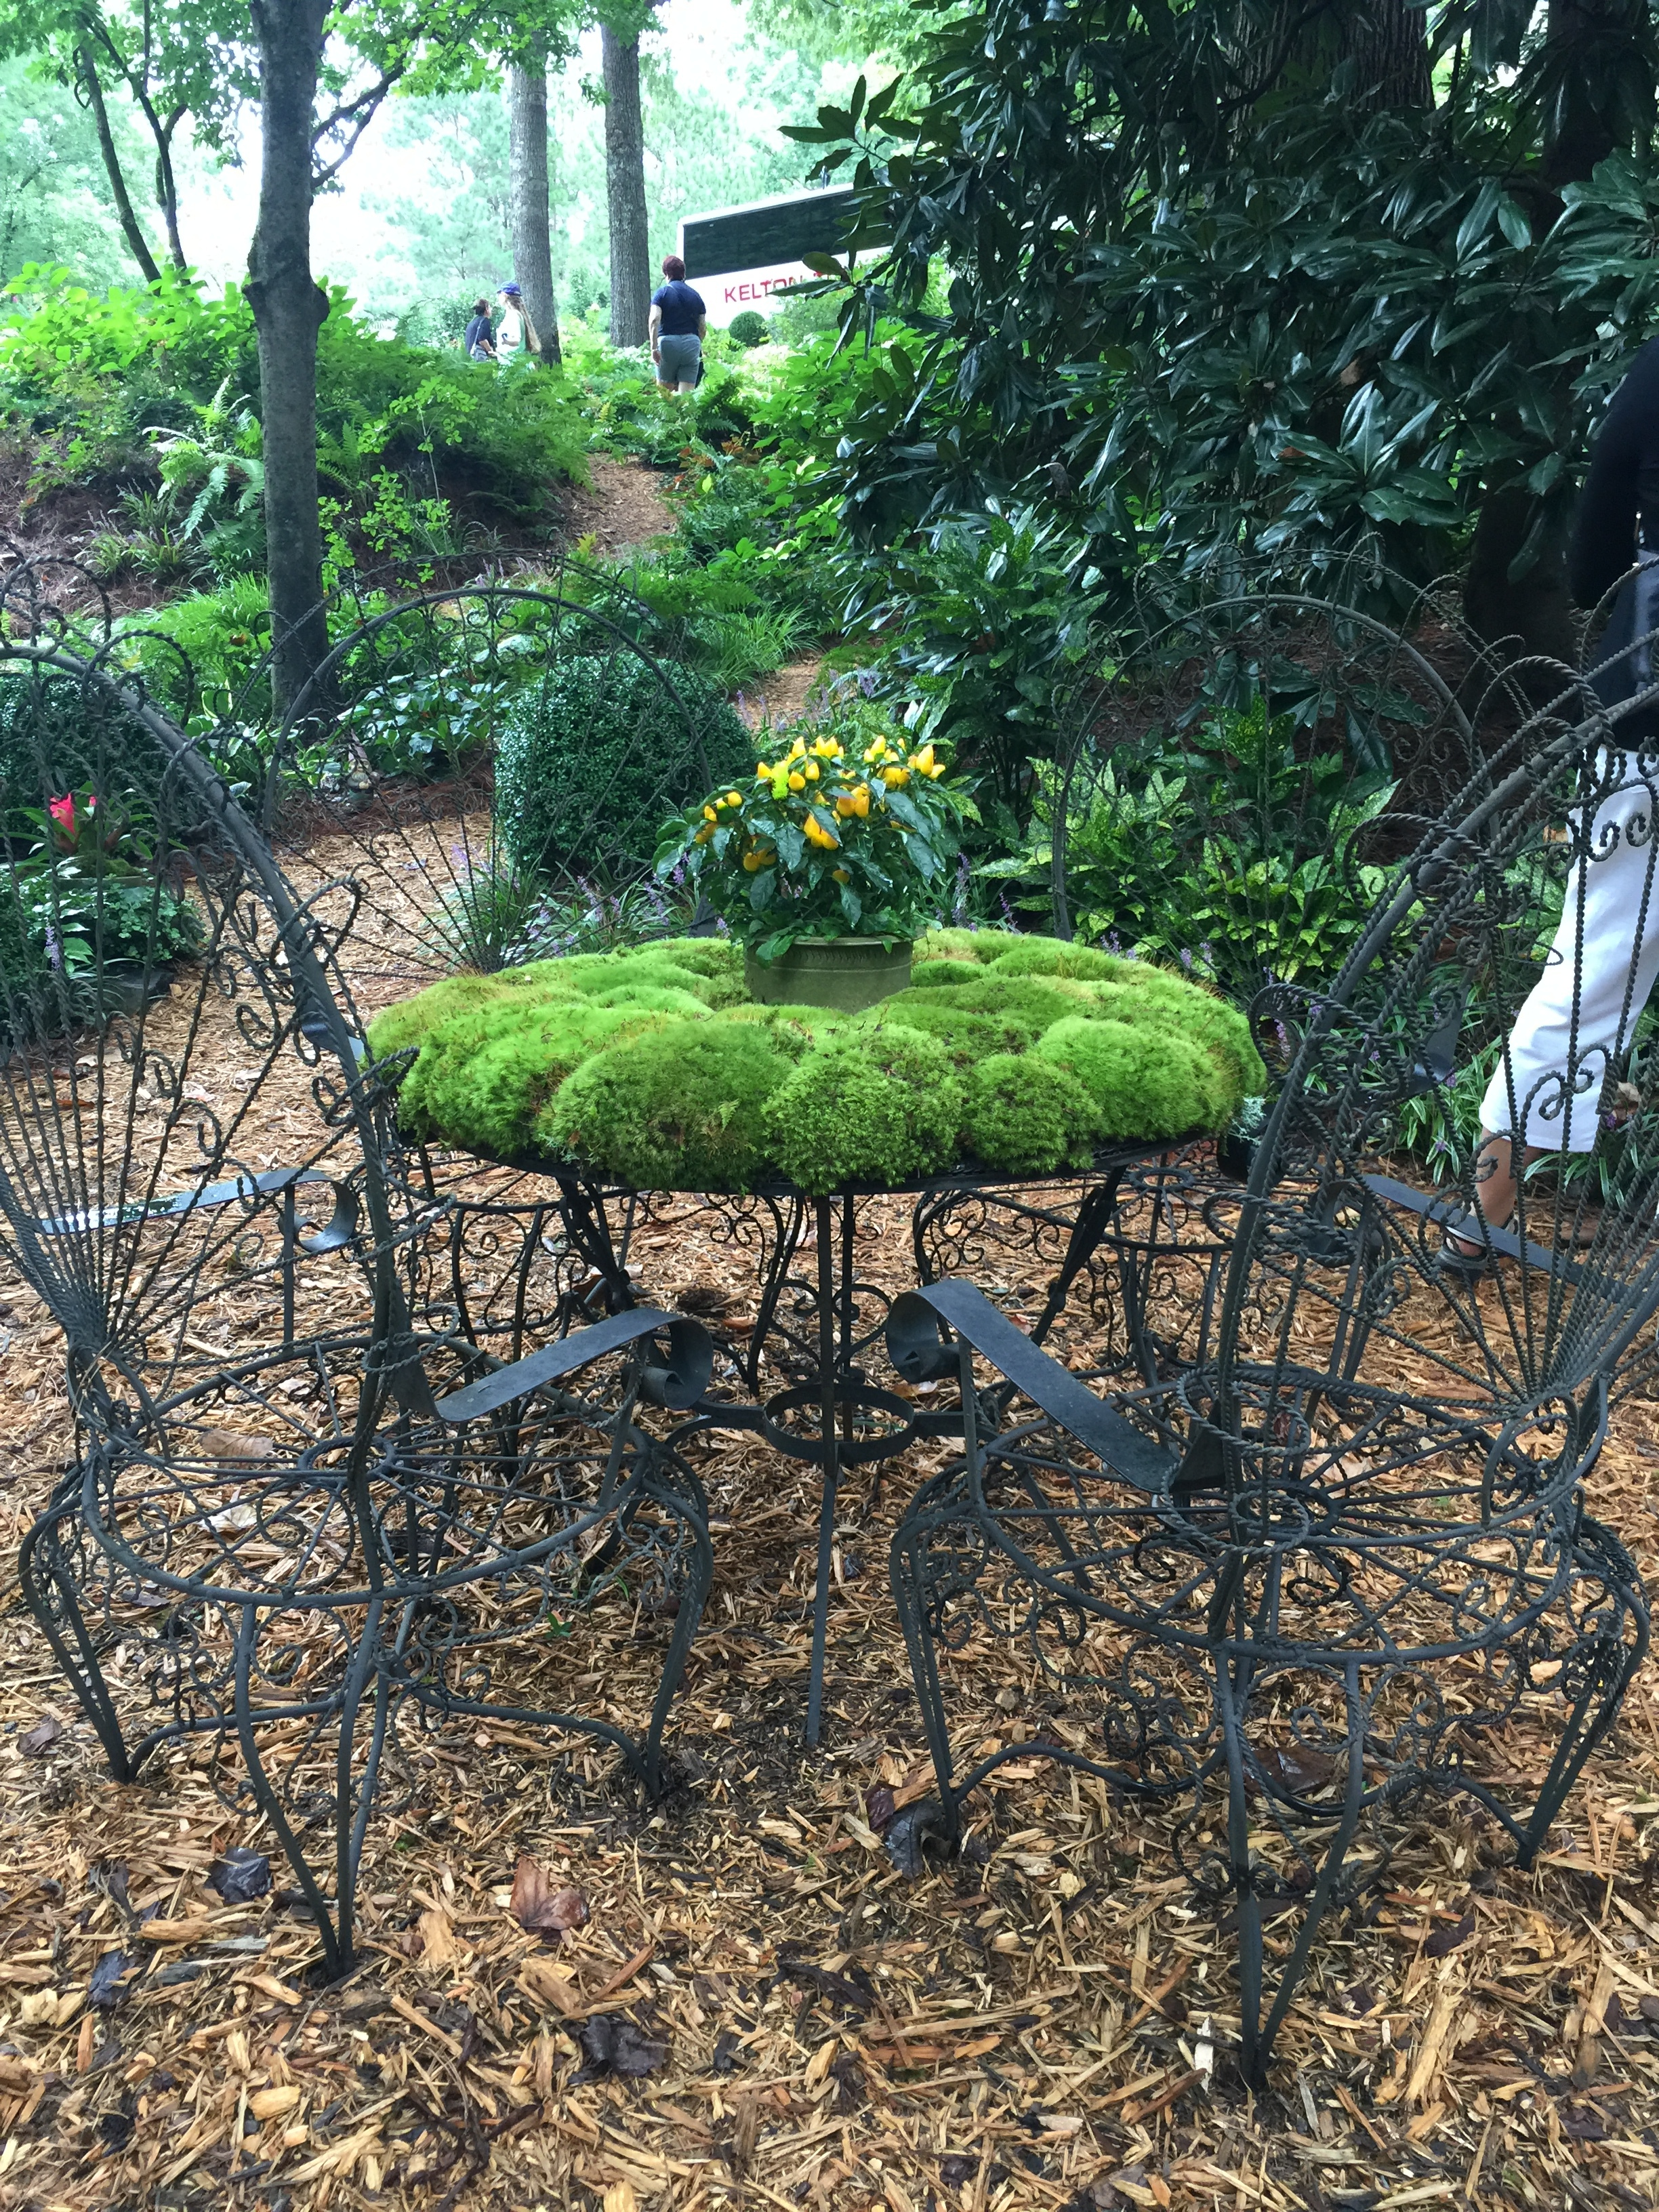 Whimsy was a big part of every garden, with gardeners getting very creative and fun even in the most formal spaces.